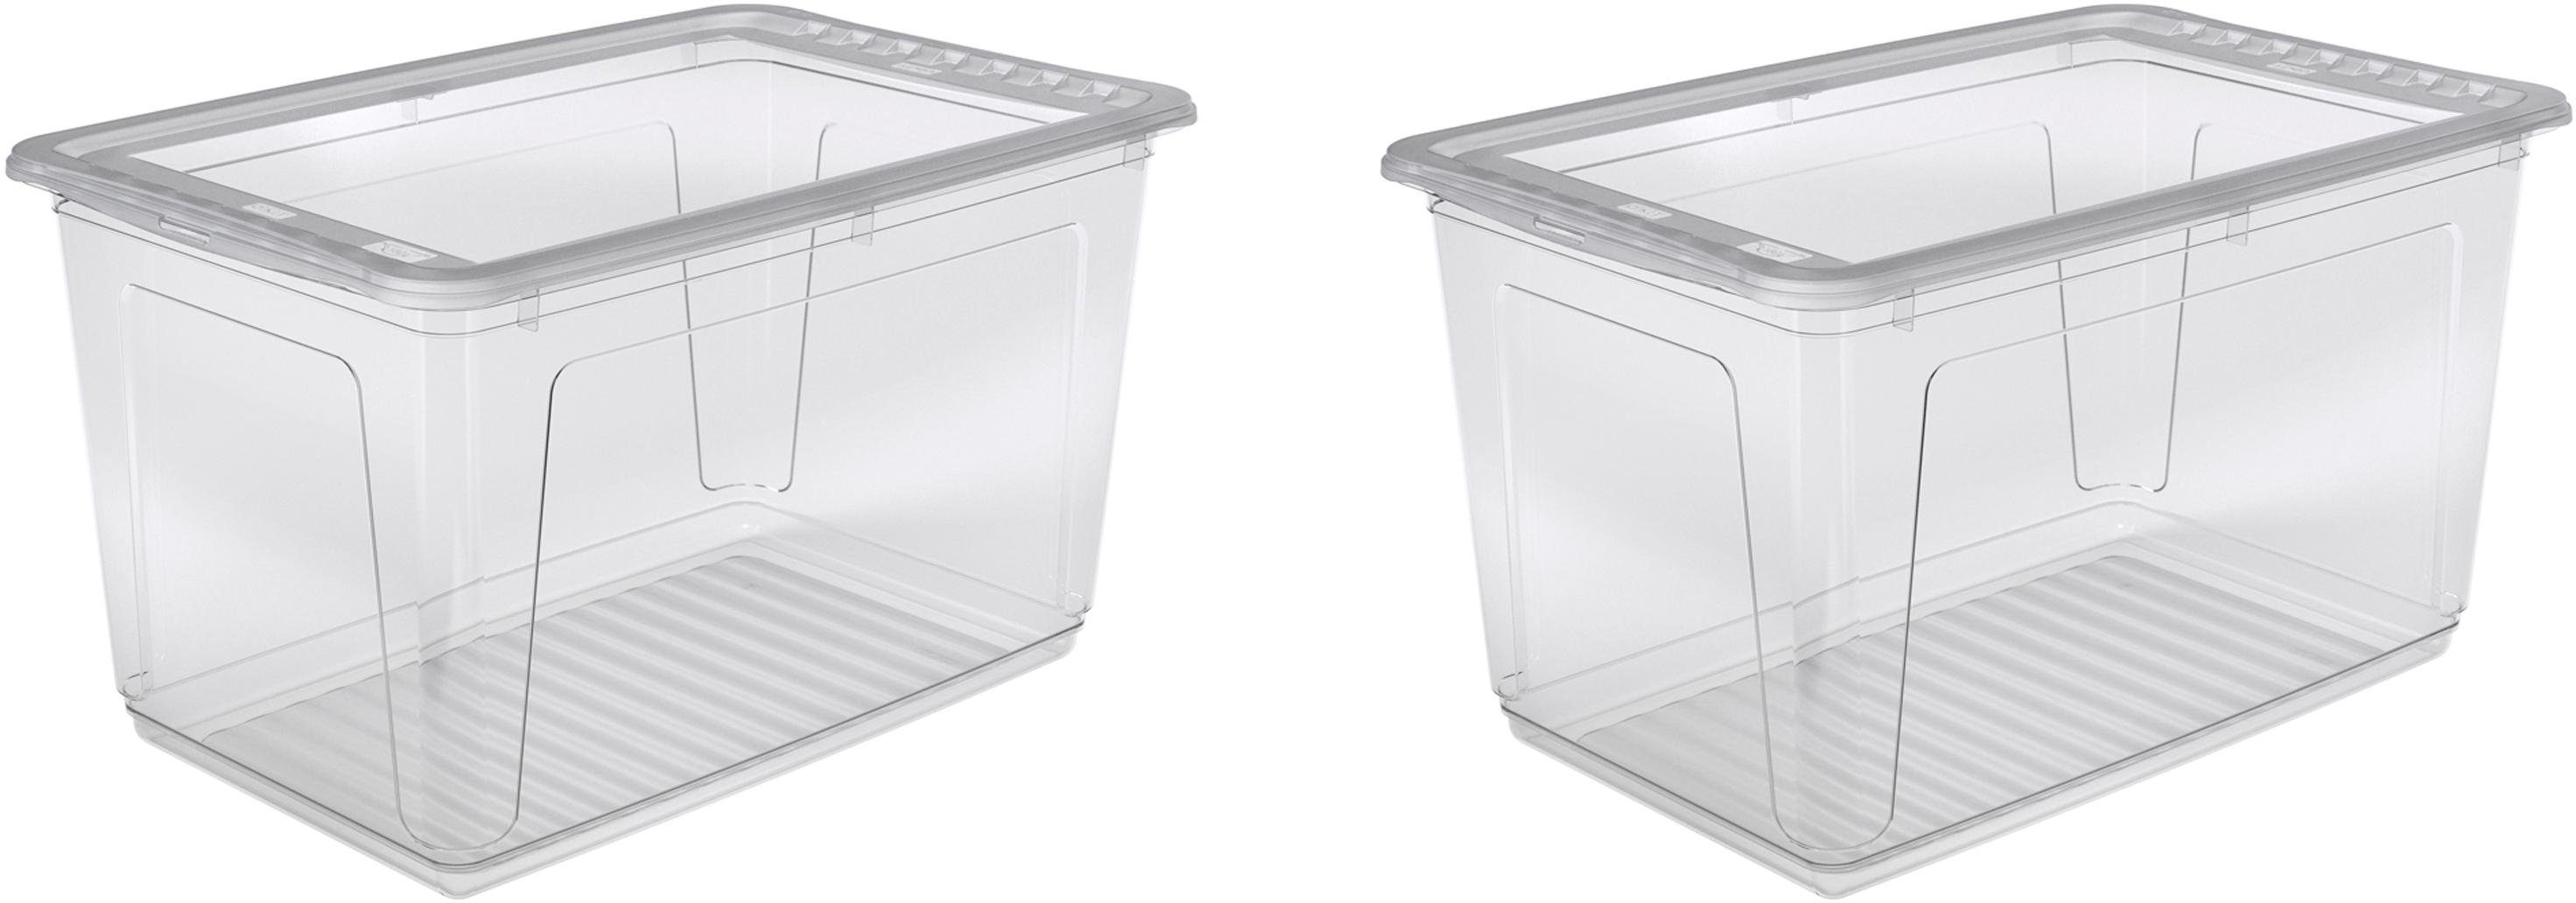 keeeper Clearbox mit Belüftungsfunktion, 59 x 39 x 35 cm, 52 Liter, 2er Set, »bea«